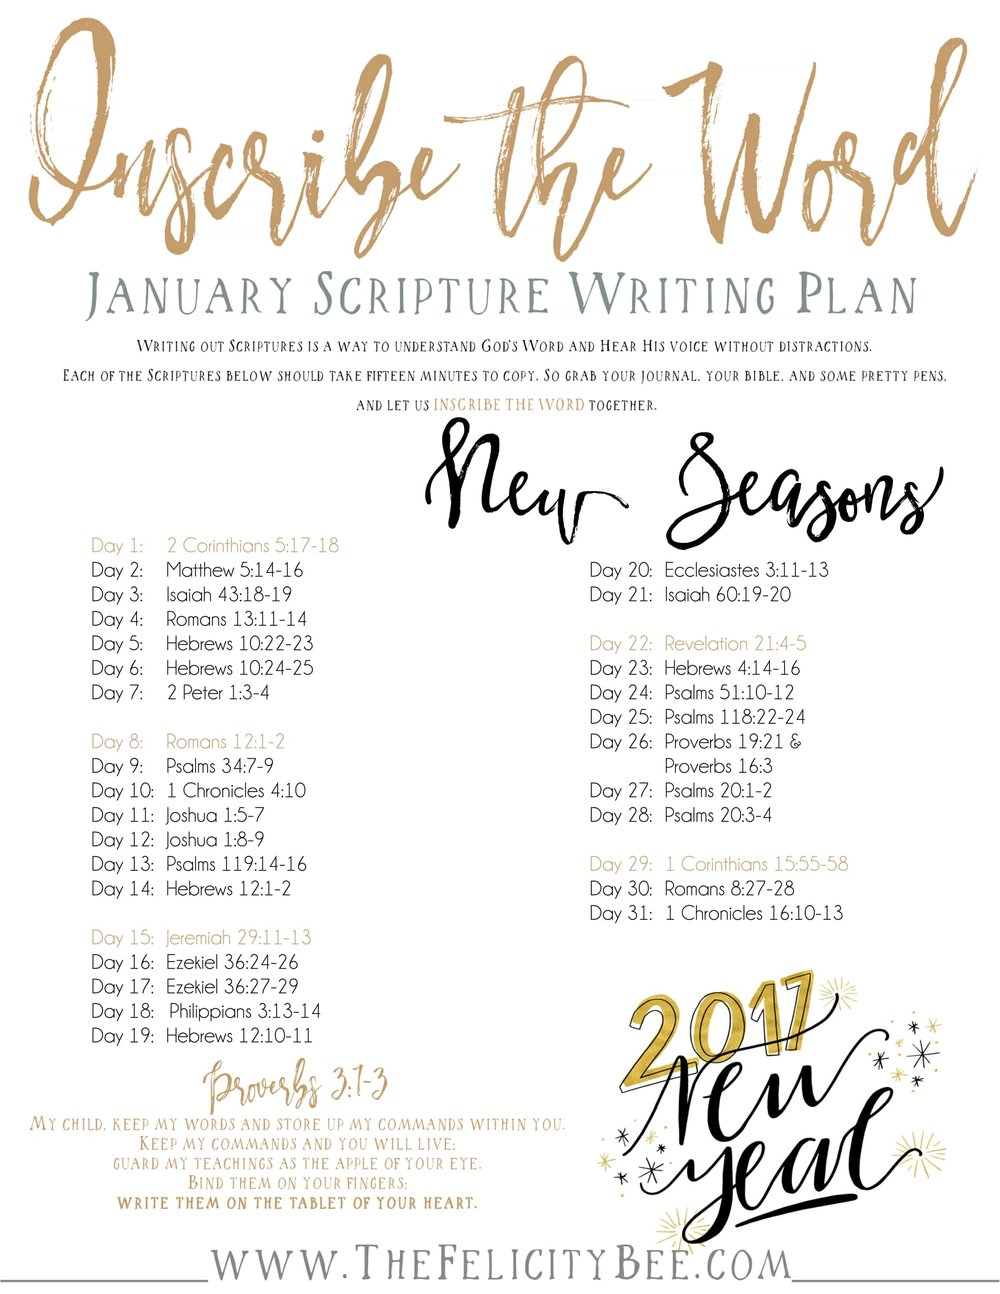 Inscribe the Word . . . January Scripture Writing Plan. — A Symphony ...